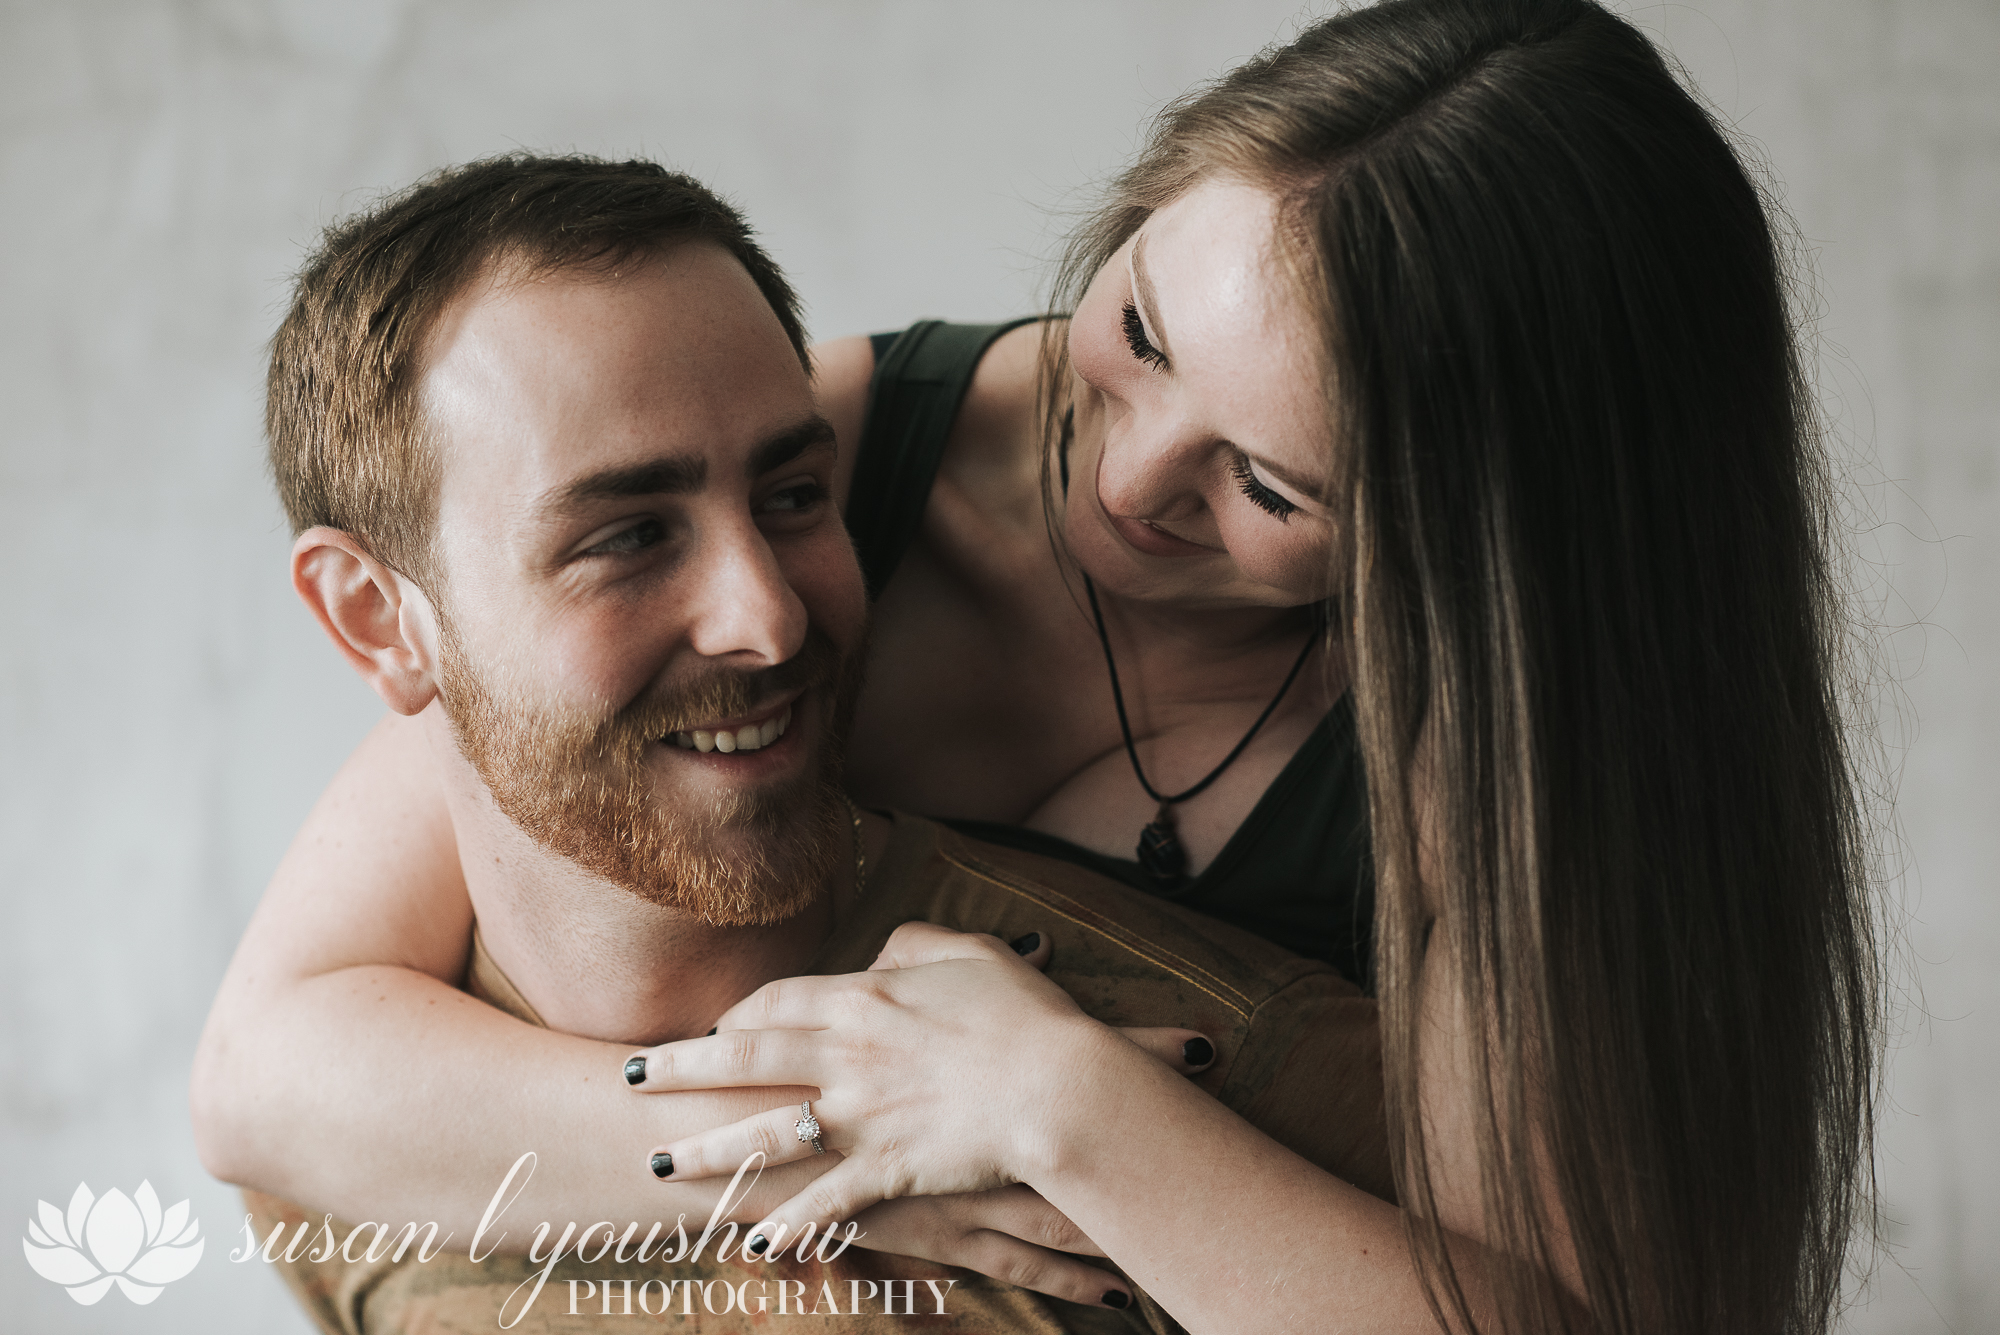 BLOG Love Mini Sessions 06-28-2018 SLY Photography LLC-5.jpg